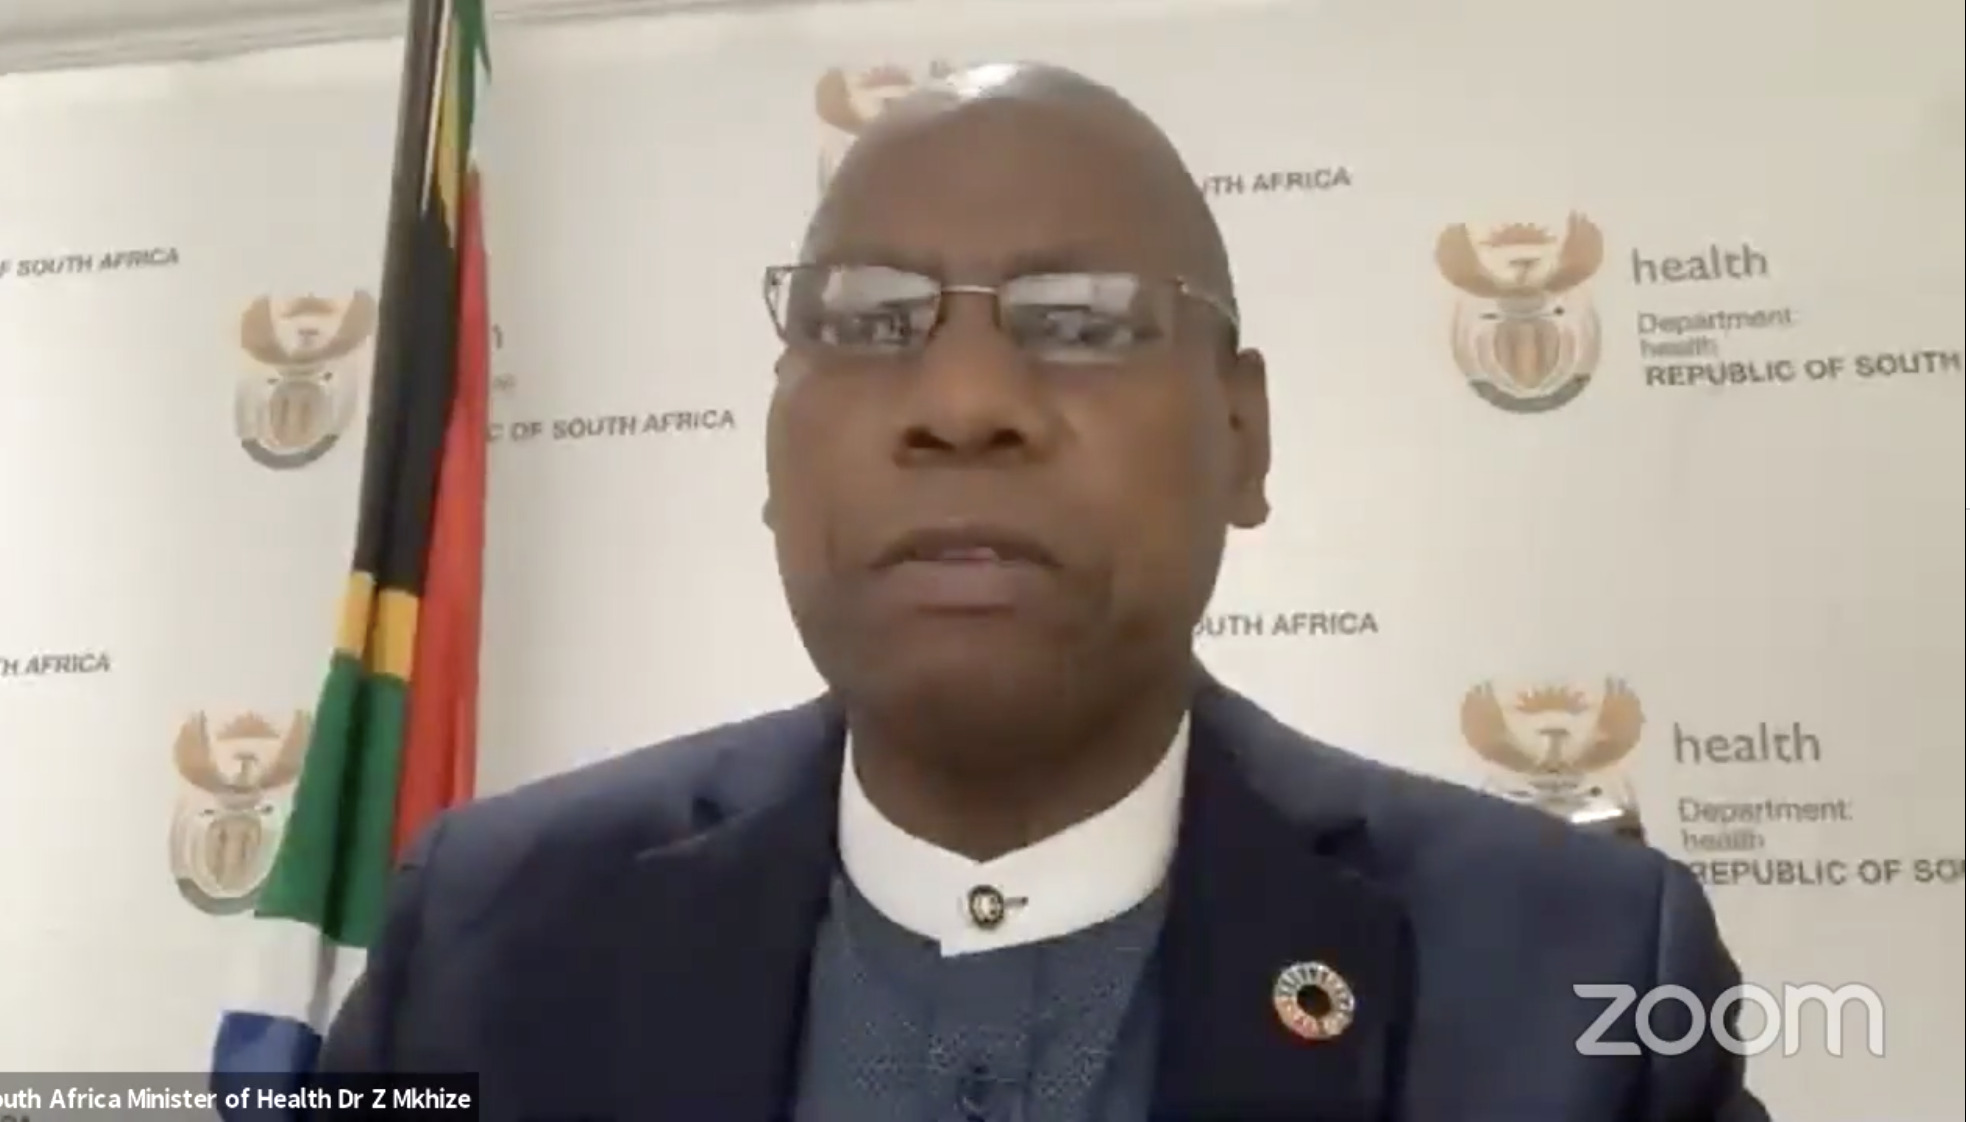 Dr Zweli Mkhize South Africa's health minister speaking on Facebook Live.